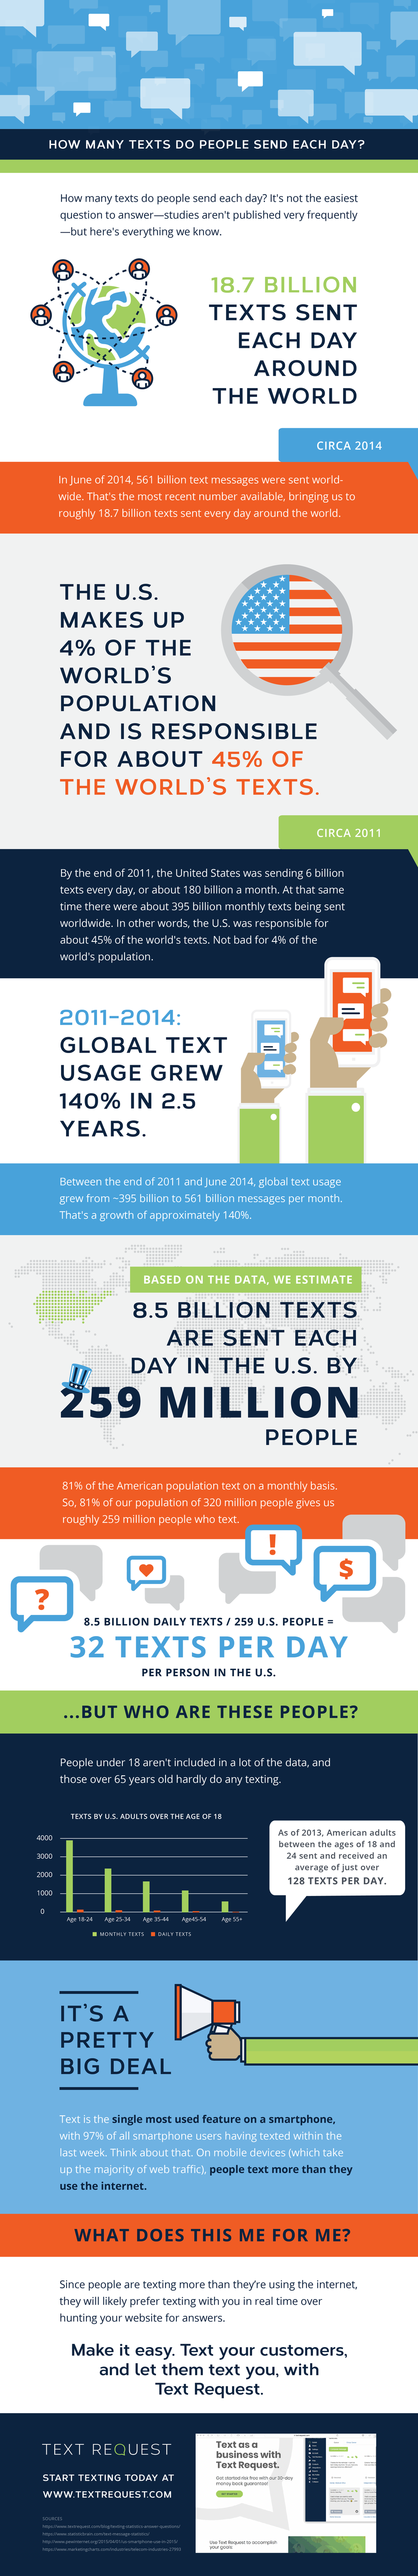 Text Request - Whitepaper Illustration - How Many Texts Do People Send Each Day - FINAL-01.png